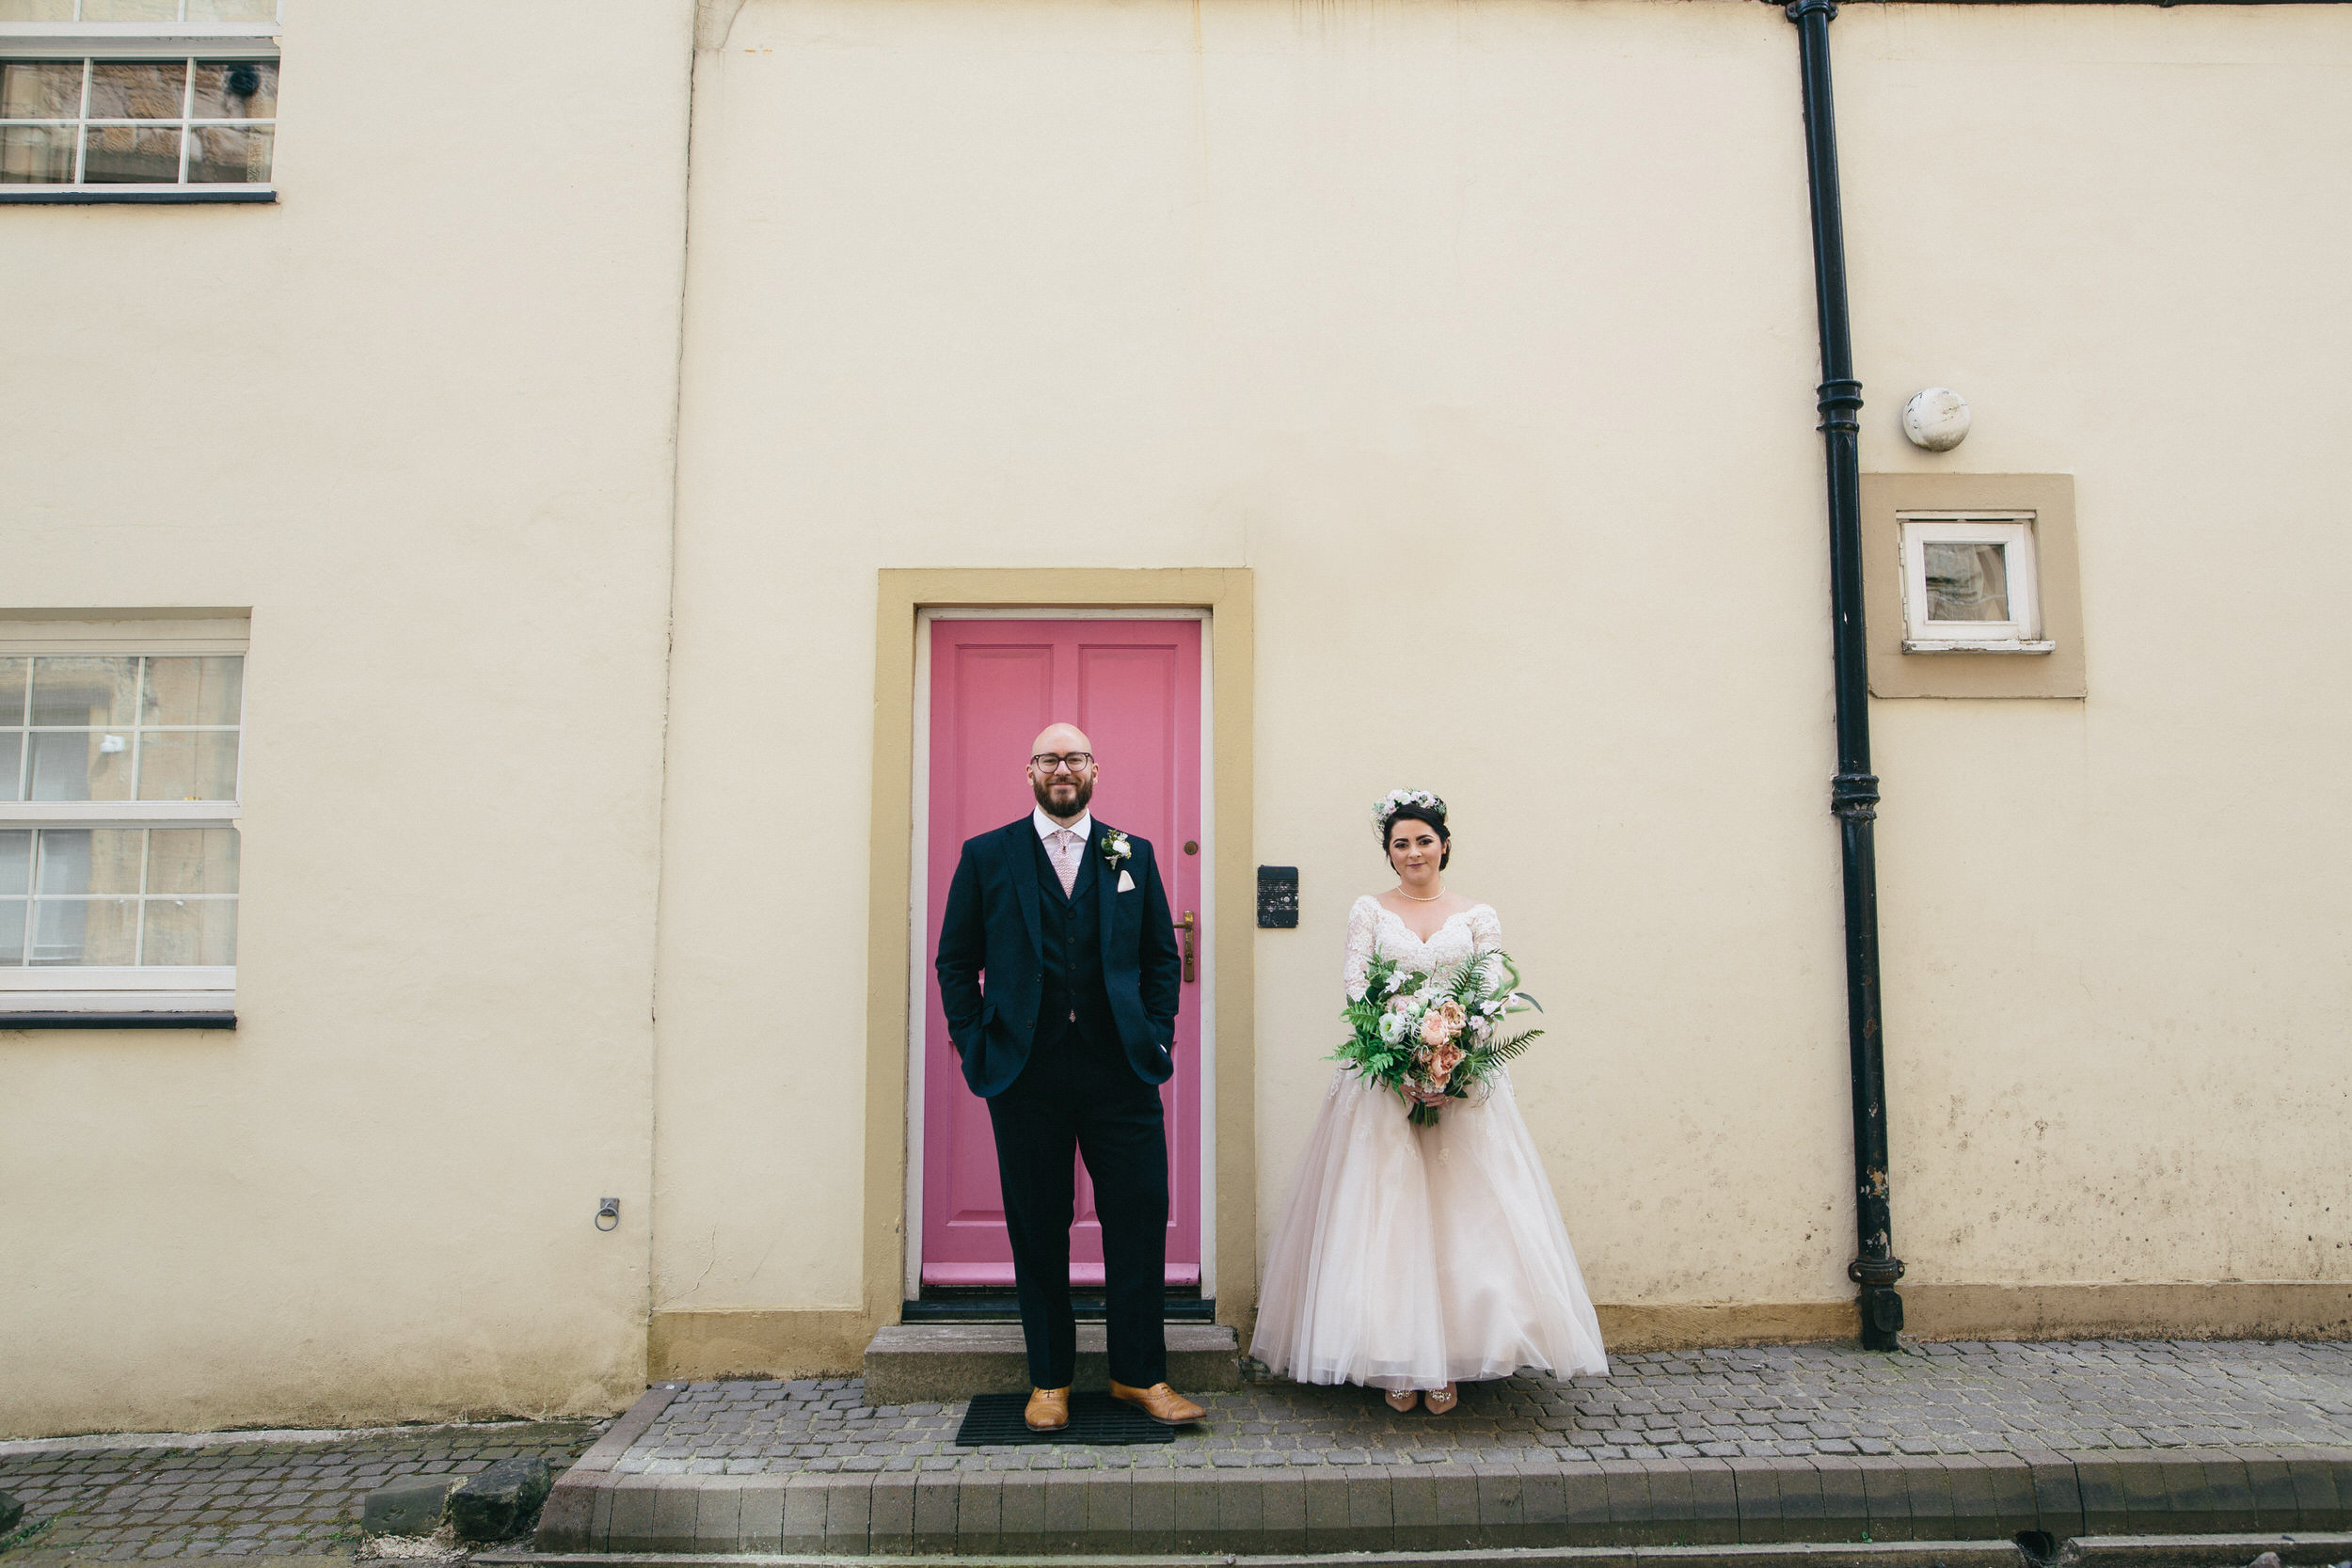 Quirky Wedding Photographer Scotland Glasgow Edinburgh Mirrorbox 004.jpg